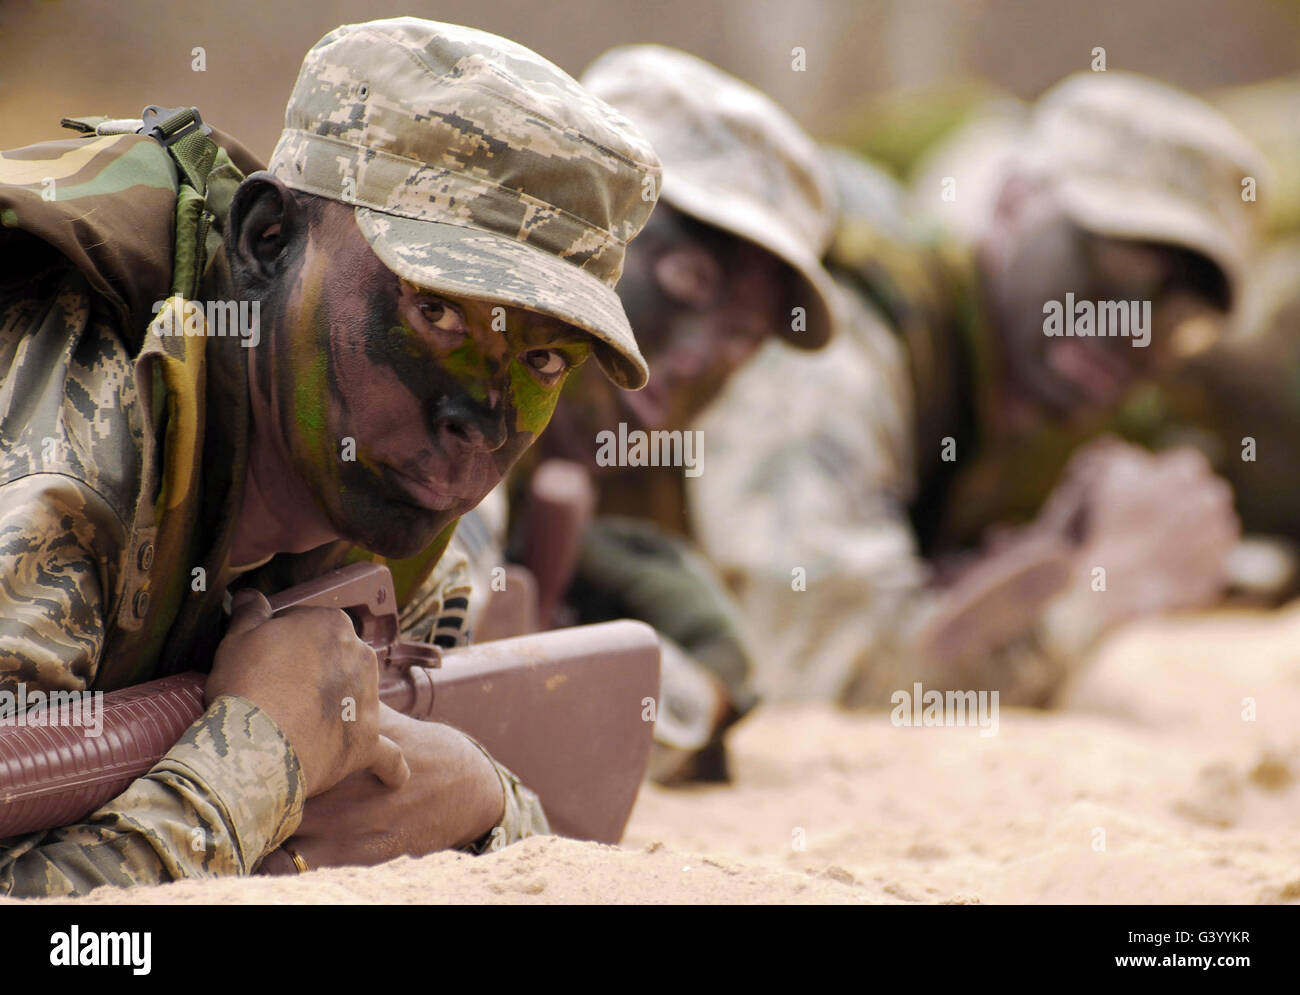 Crawling into the sand, members of team Vandenberg simulate an enemy attack. - Stock Image